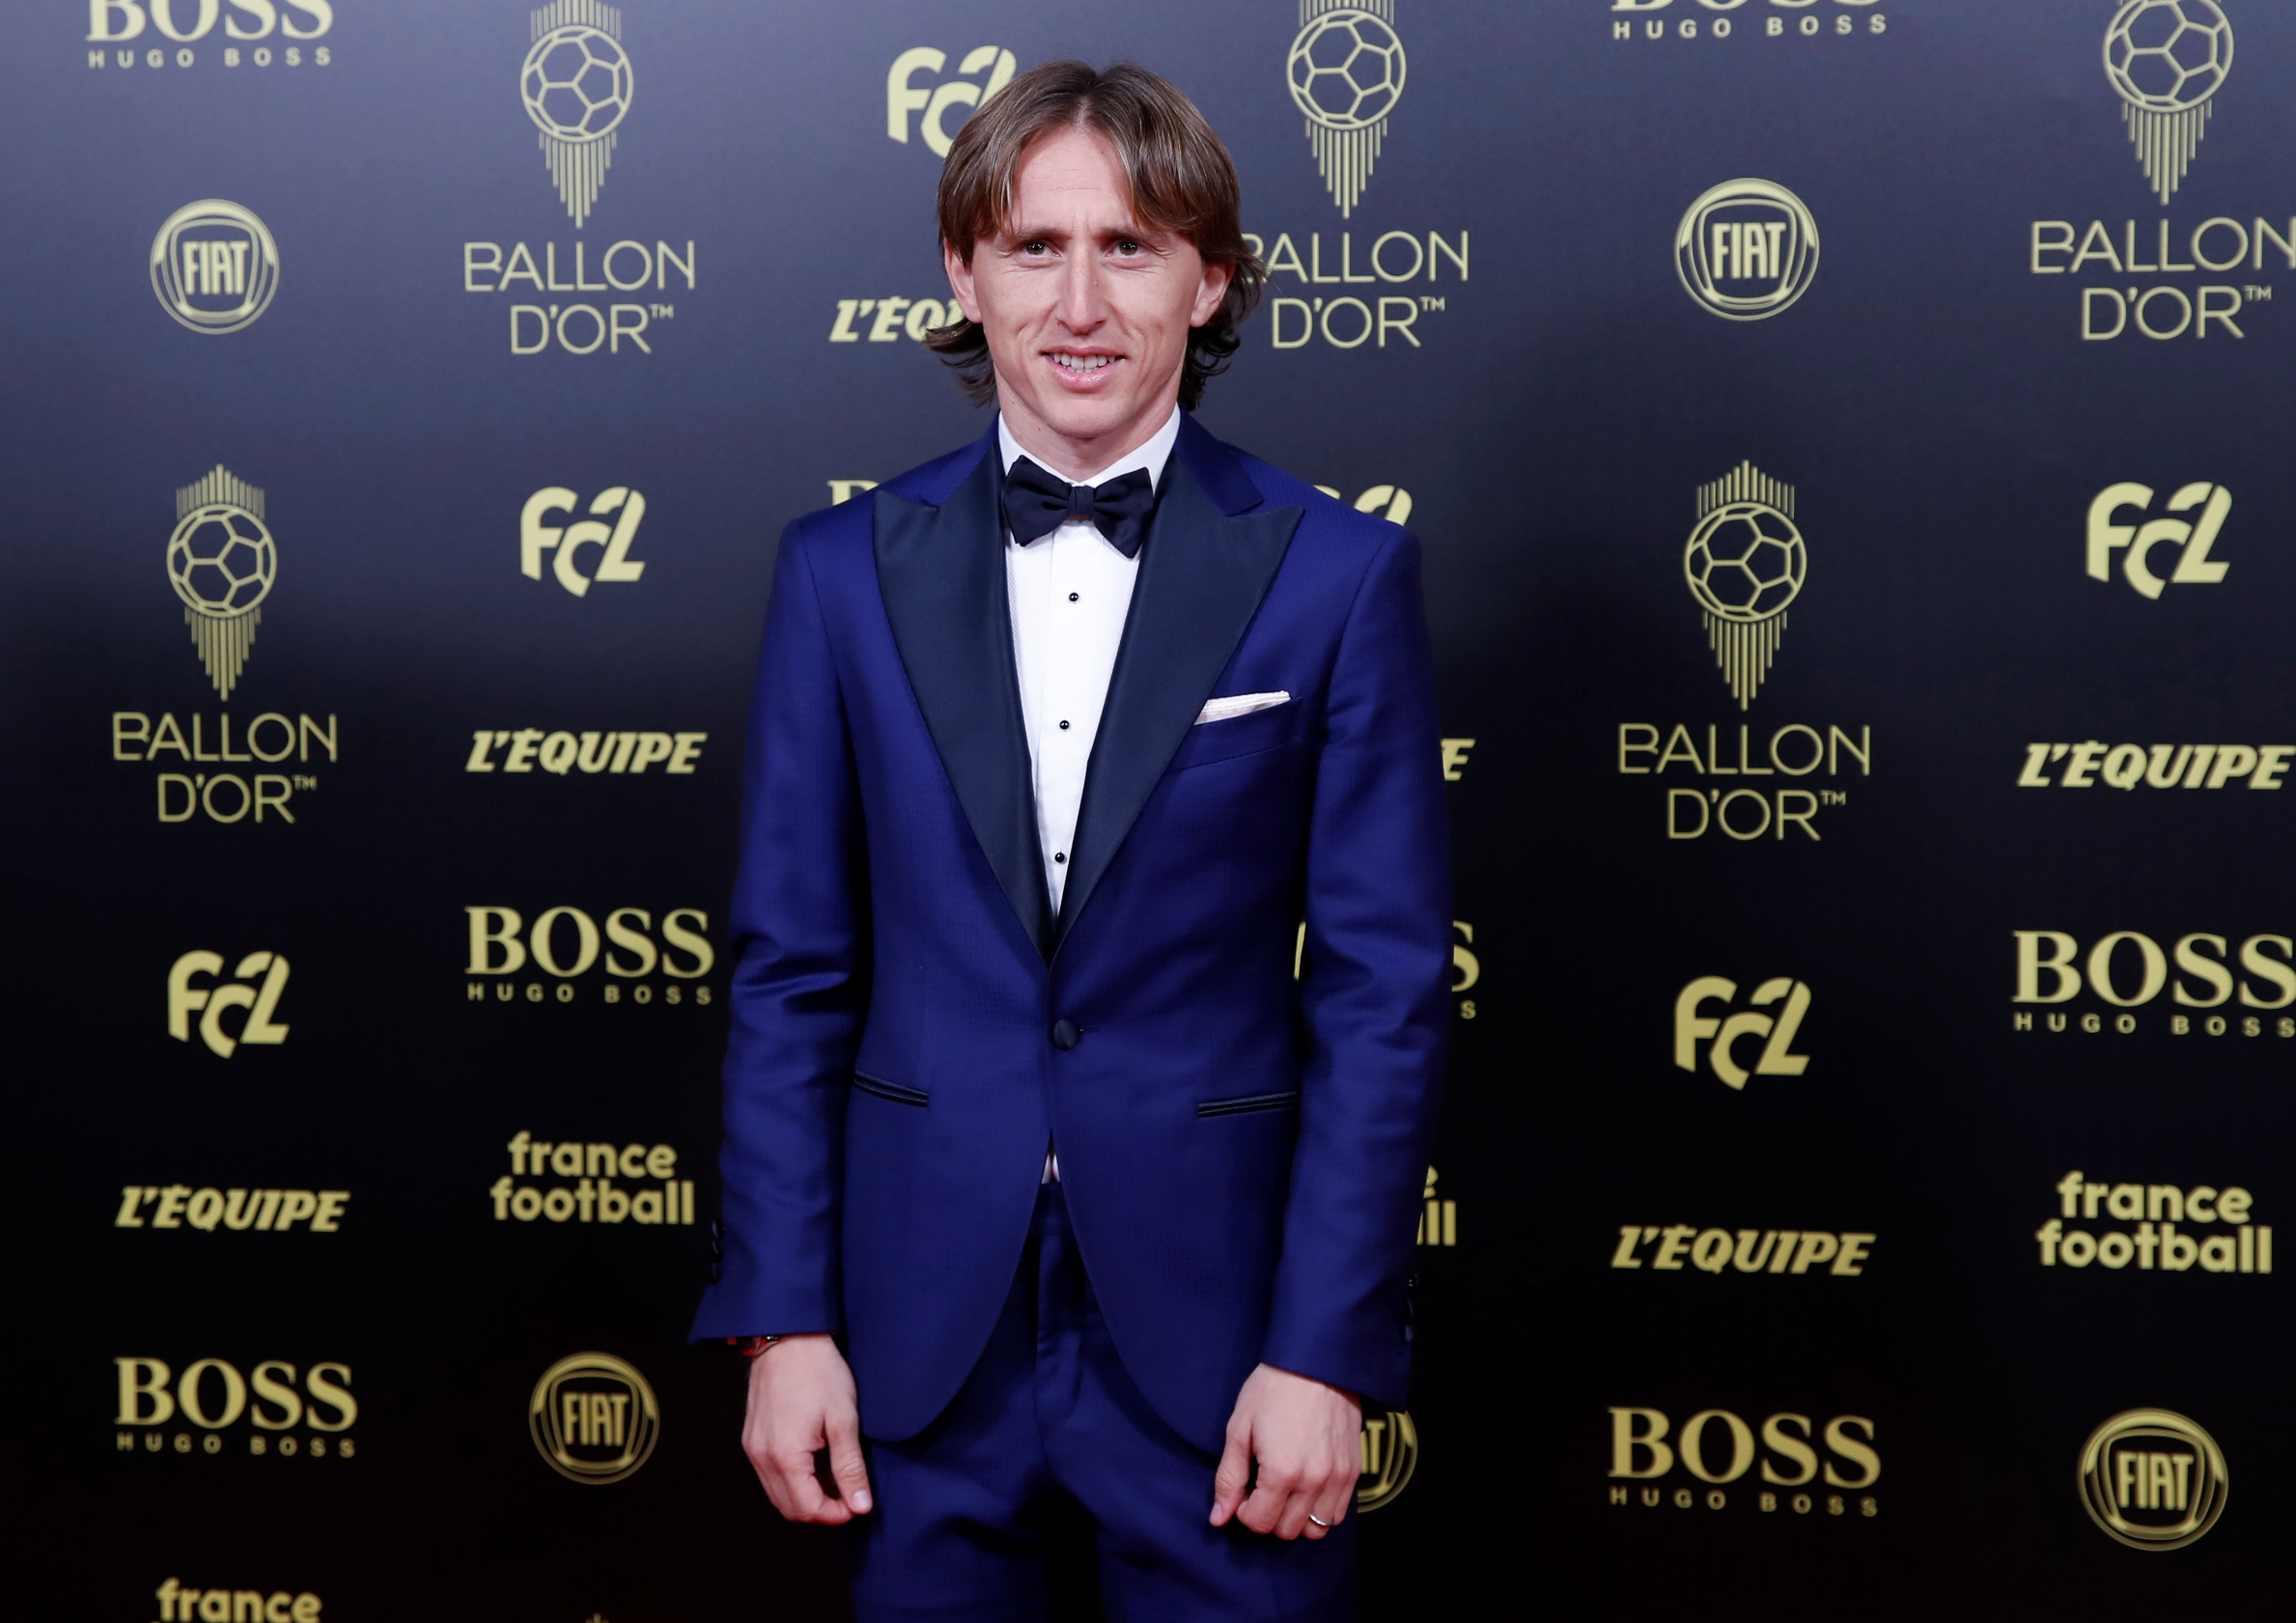 Soccer Football - The Ballon dOr awards - Theatre du Chatelet, Paris, France - December 2, 2019   Real Madrid's Luka Modric arrives  REUTERS/Christian Hartmann - RC27ND9IXV9Y